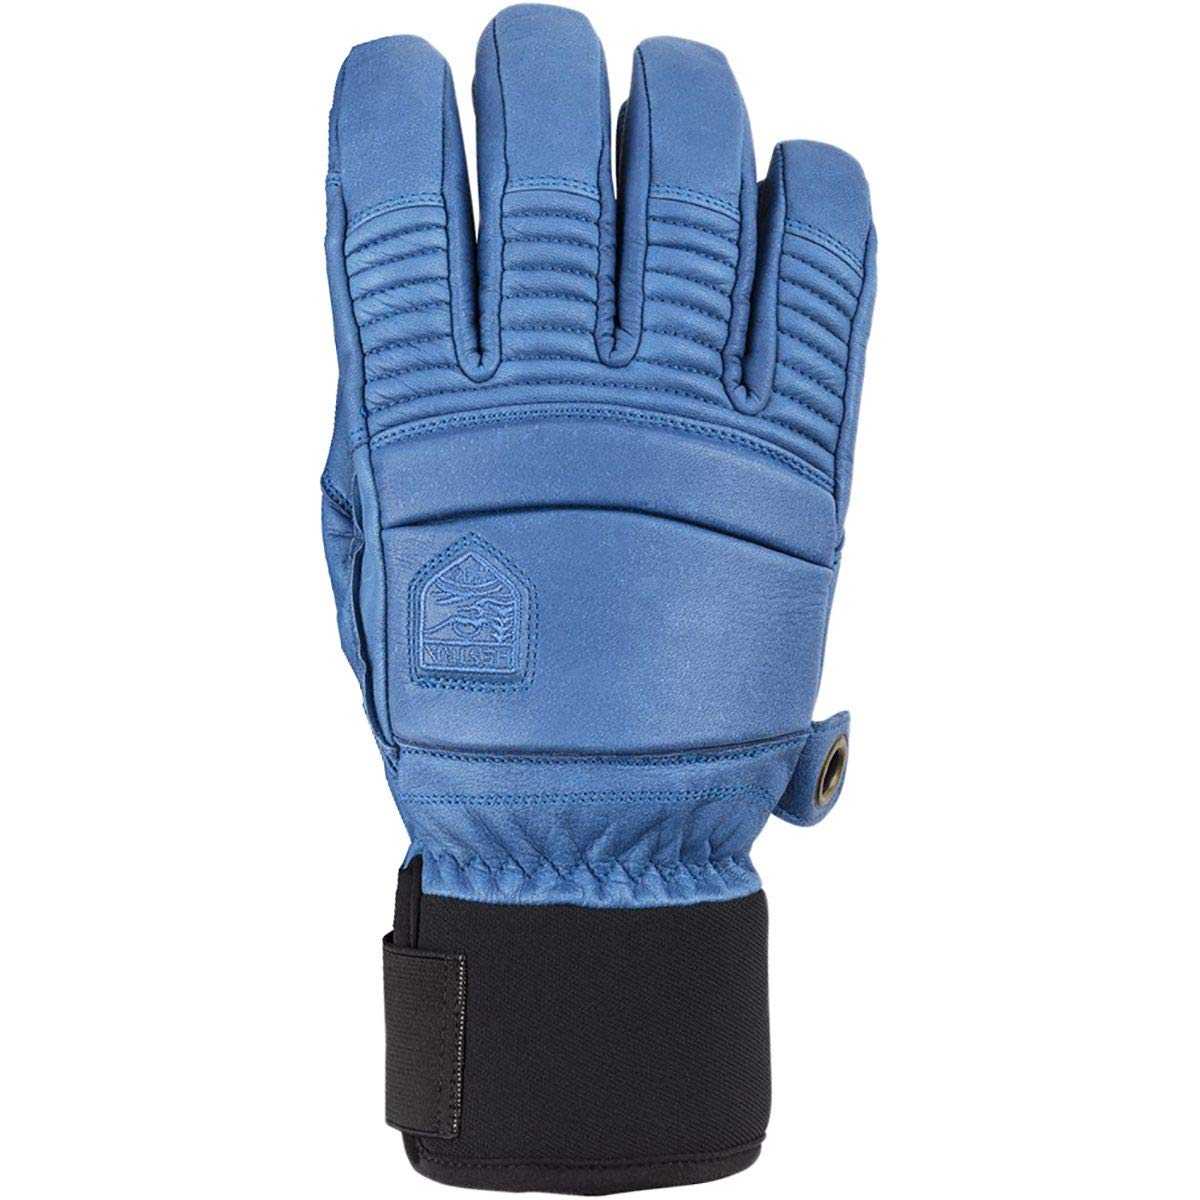 Hestra Men's Leather Fall Line 5 Finger Gloves - Royal Blue - 7 by Hestra